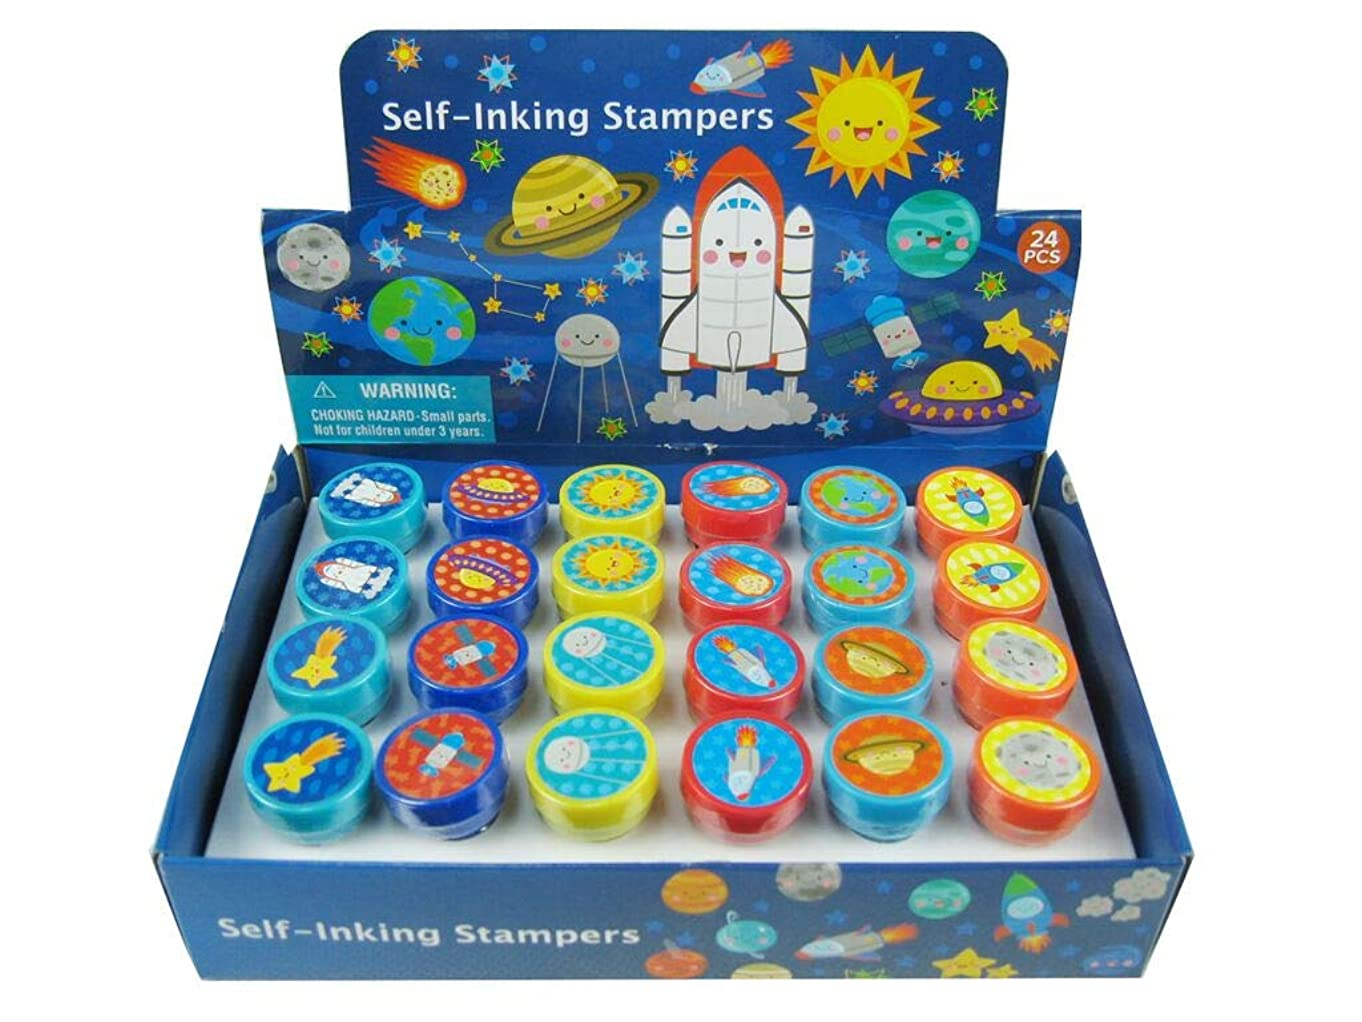 TINYMILLS 24 Pcs Outer Space Stampers for Kids